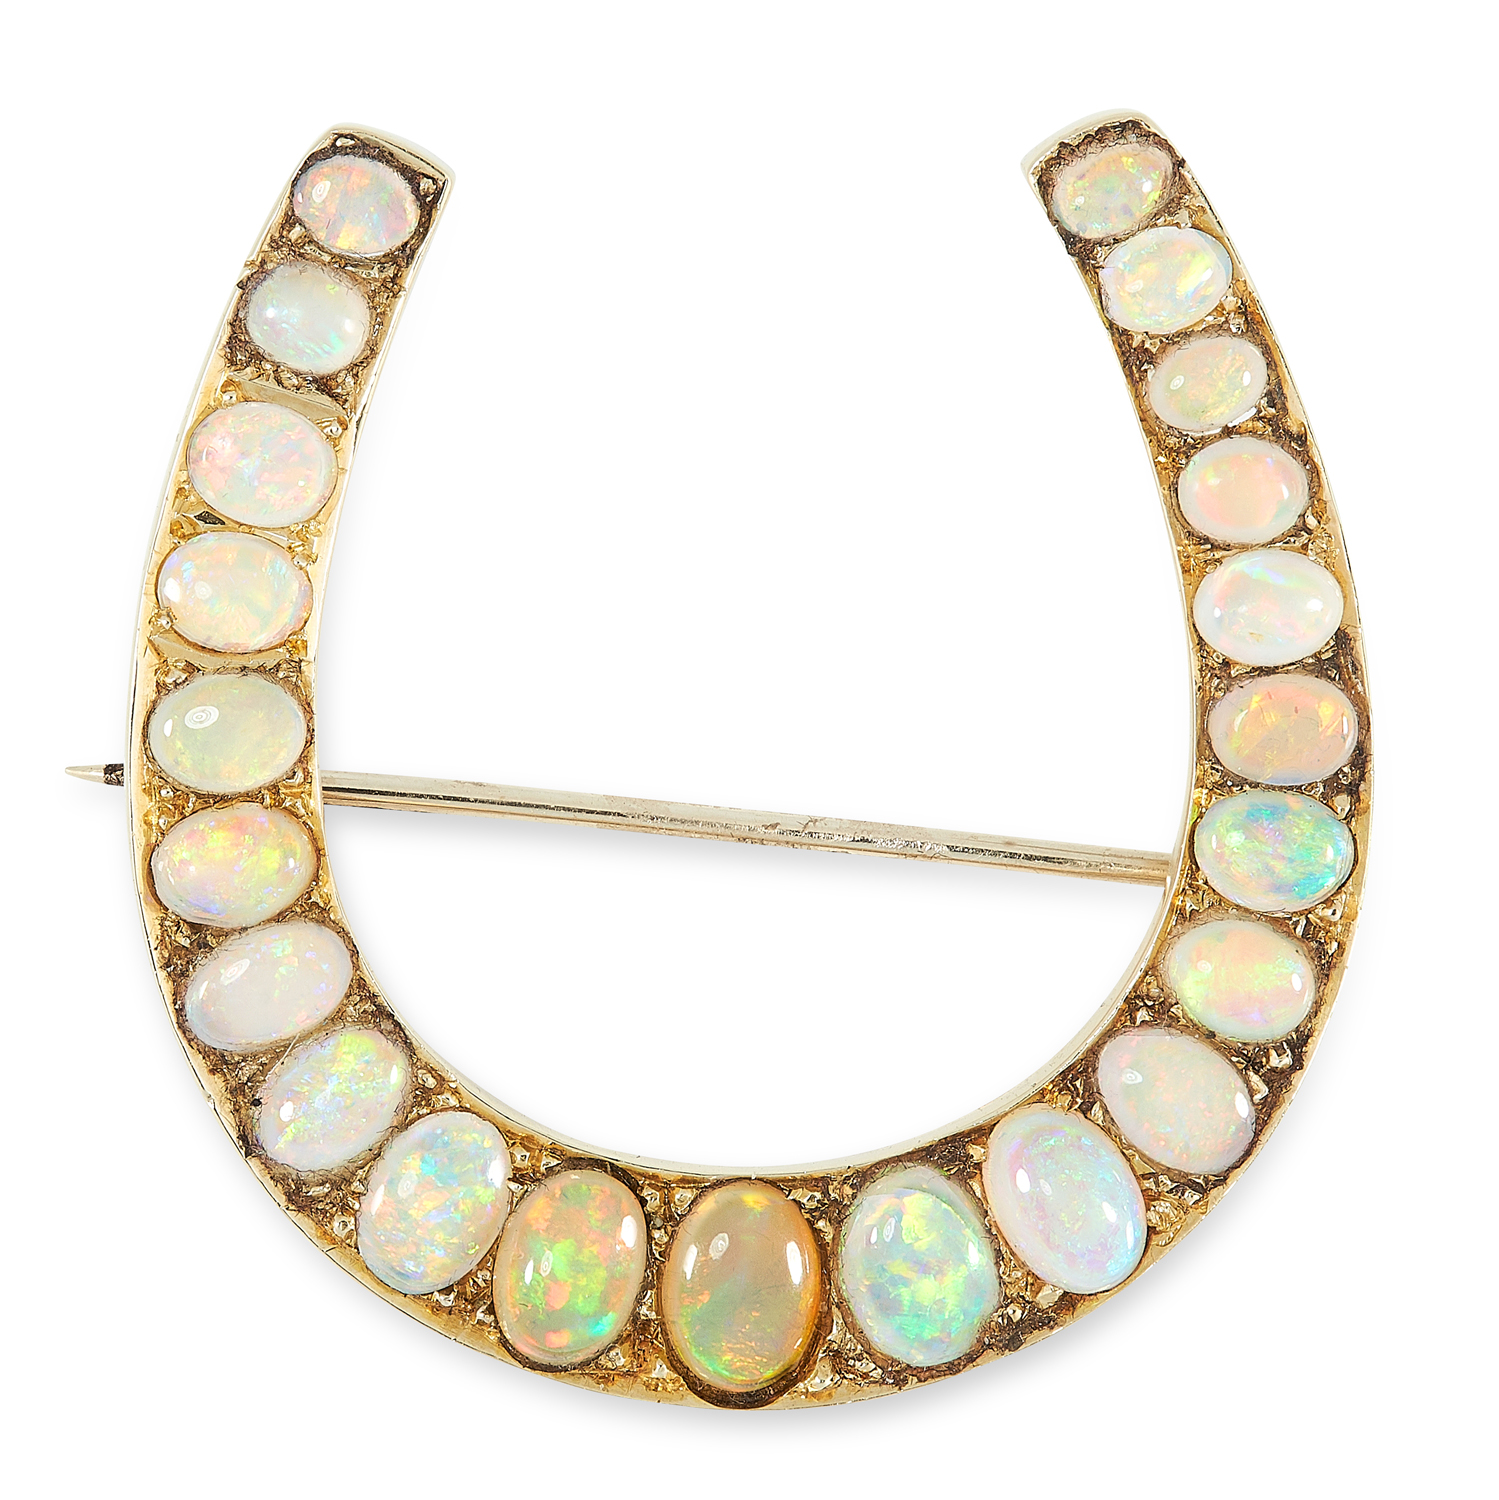 AN ANTIQUE OPAL HORSESHOE BROOCH in yellow gold, designed as a horseshoe, set with graduated oval